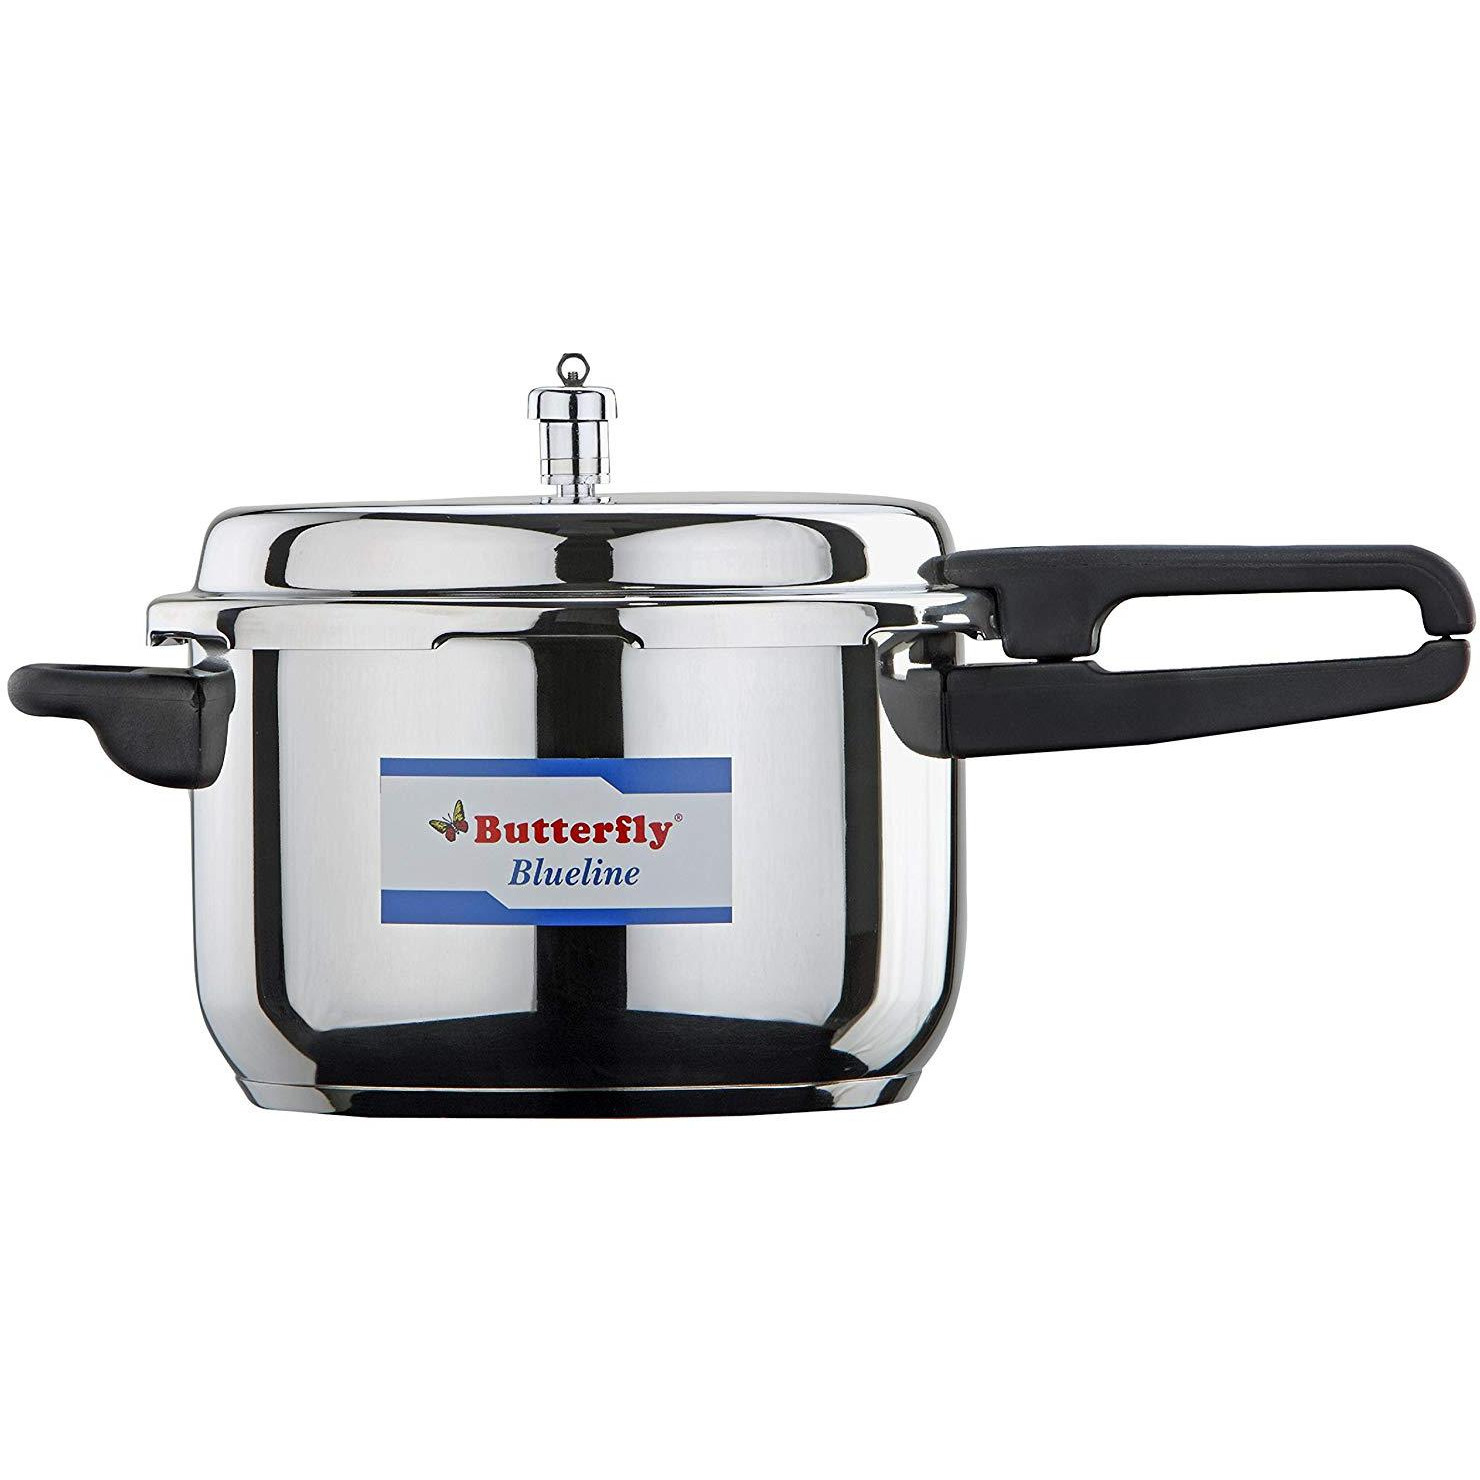 Butterfly BL-2L Blue Line Stainless Steel Pressure Cooker, 2-Liter